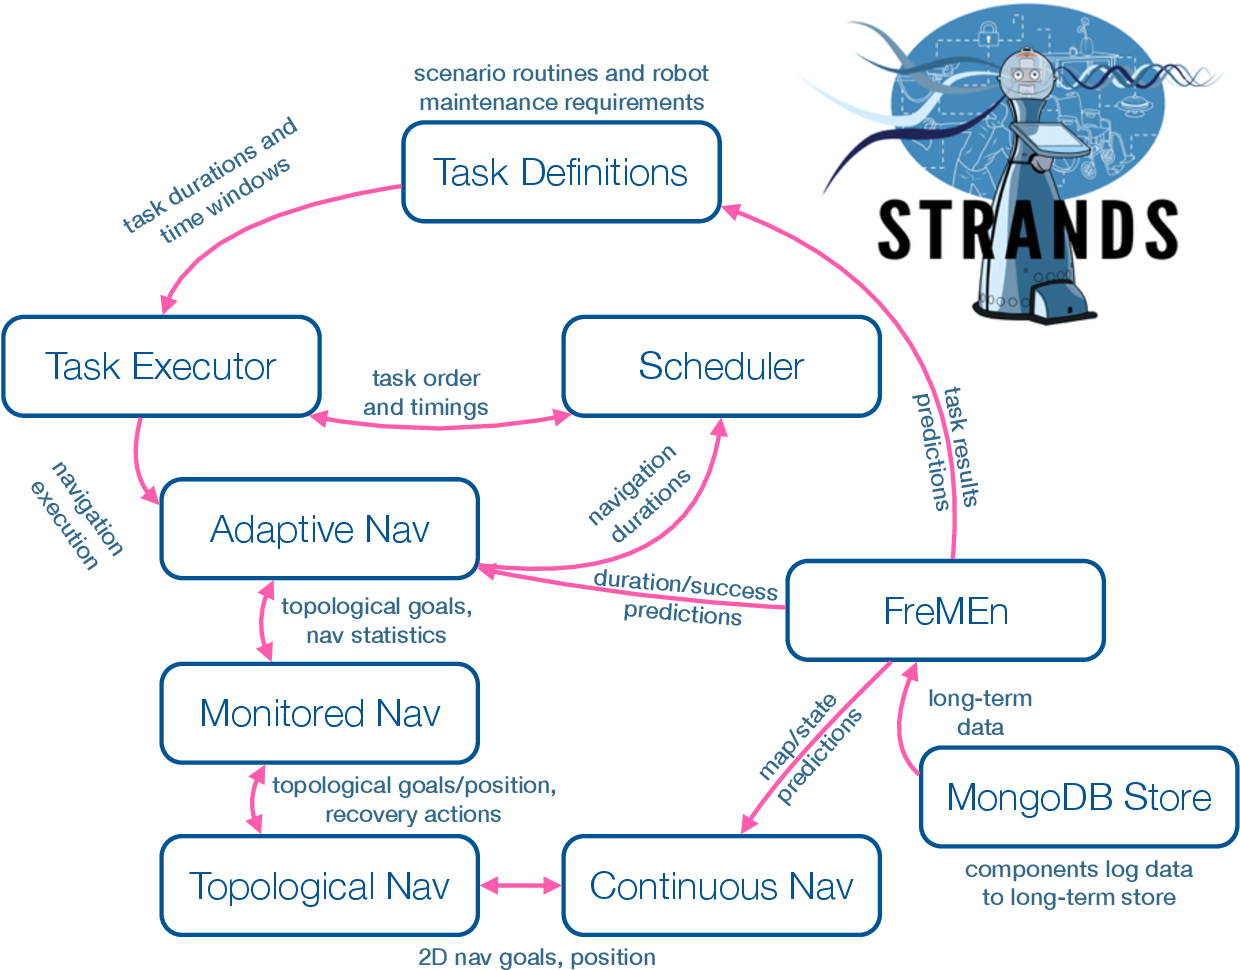 Figure 3 for The STRANDS Project: Long-Term Autonomy in Everyday Environments